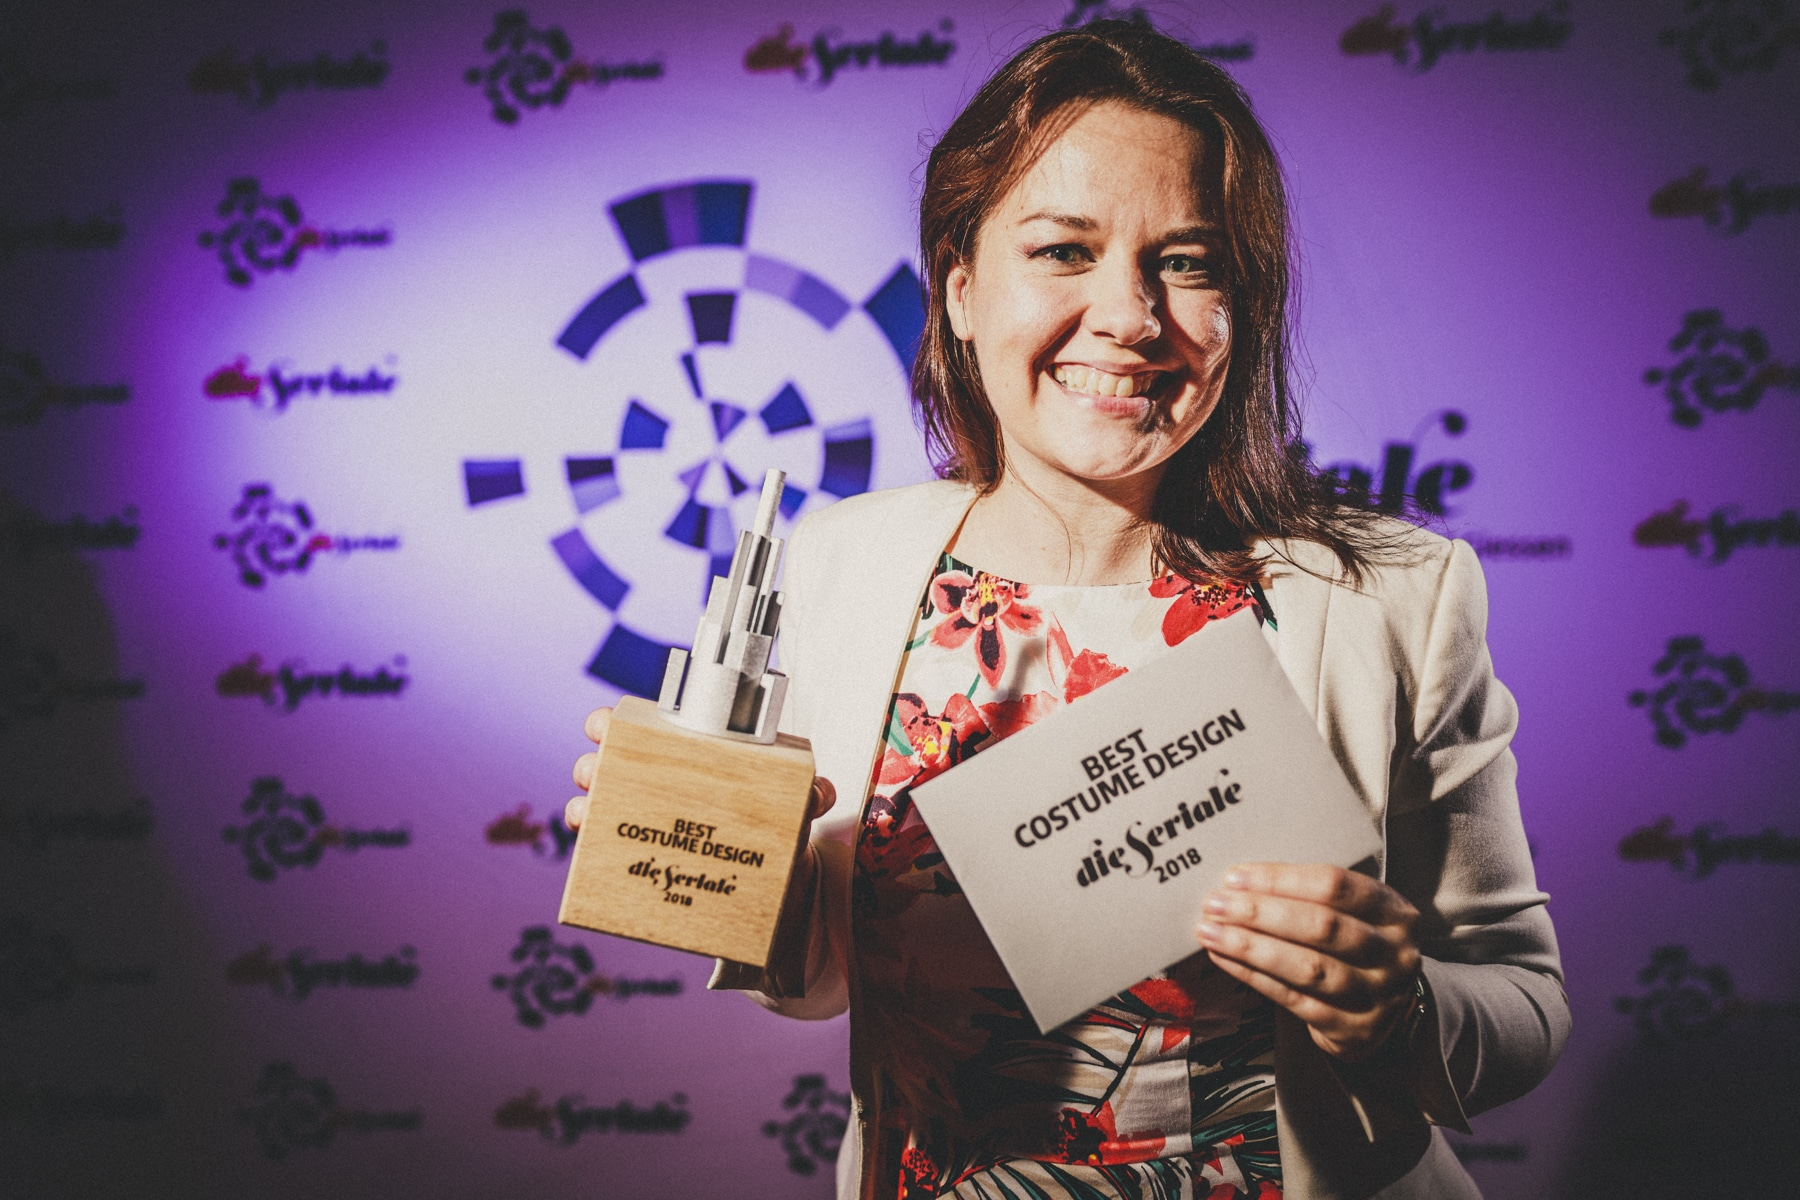 """BEST COSTUME DESIGN - Kate Madison, creator, director & producer of """"Ren: The Girl with the Mark"""", from the UK, accepted the award on behalf of Miriam Spring Davies. 